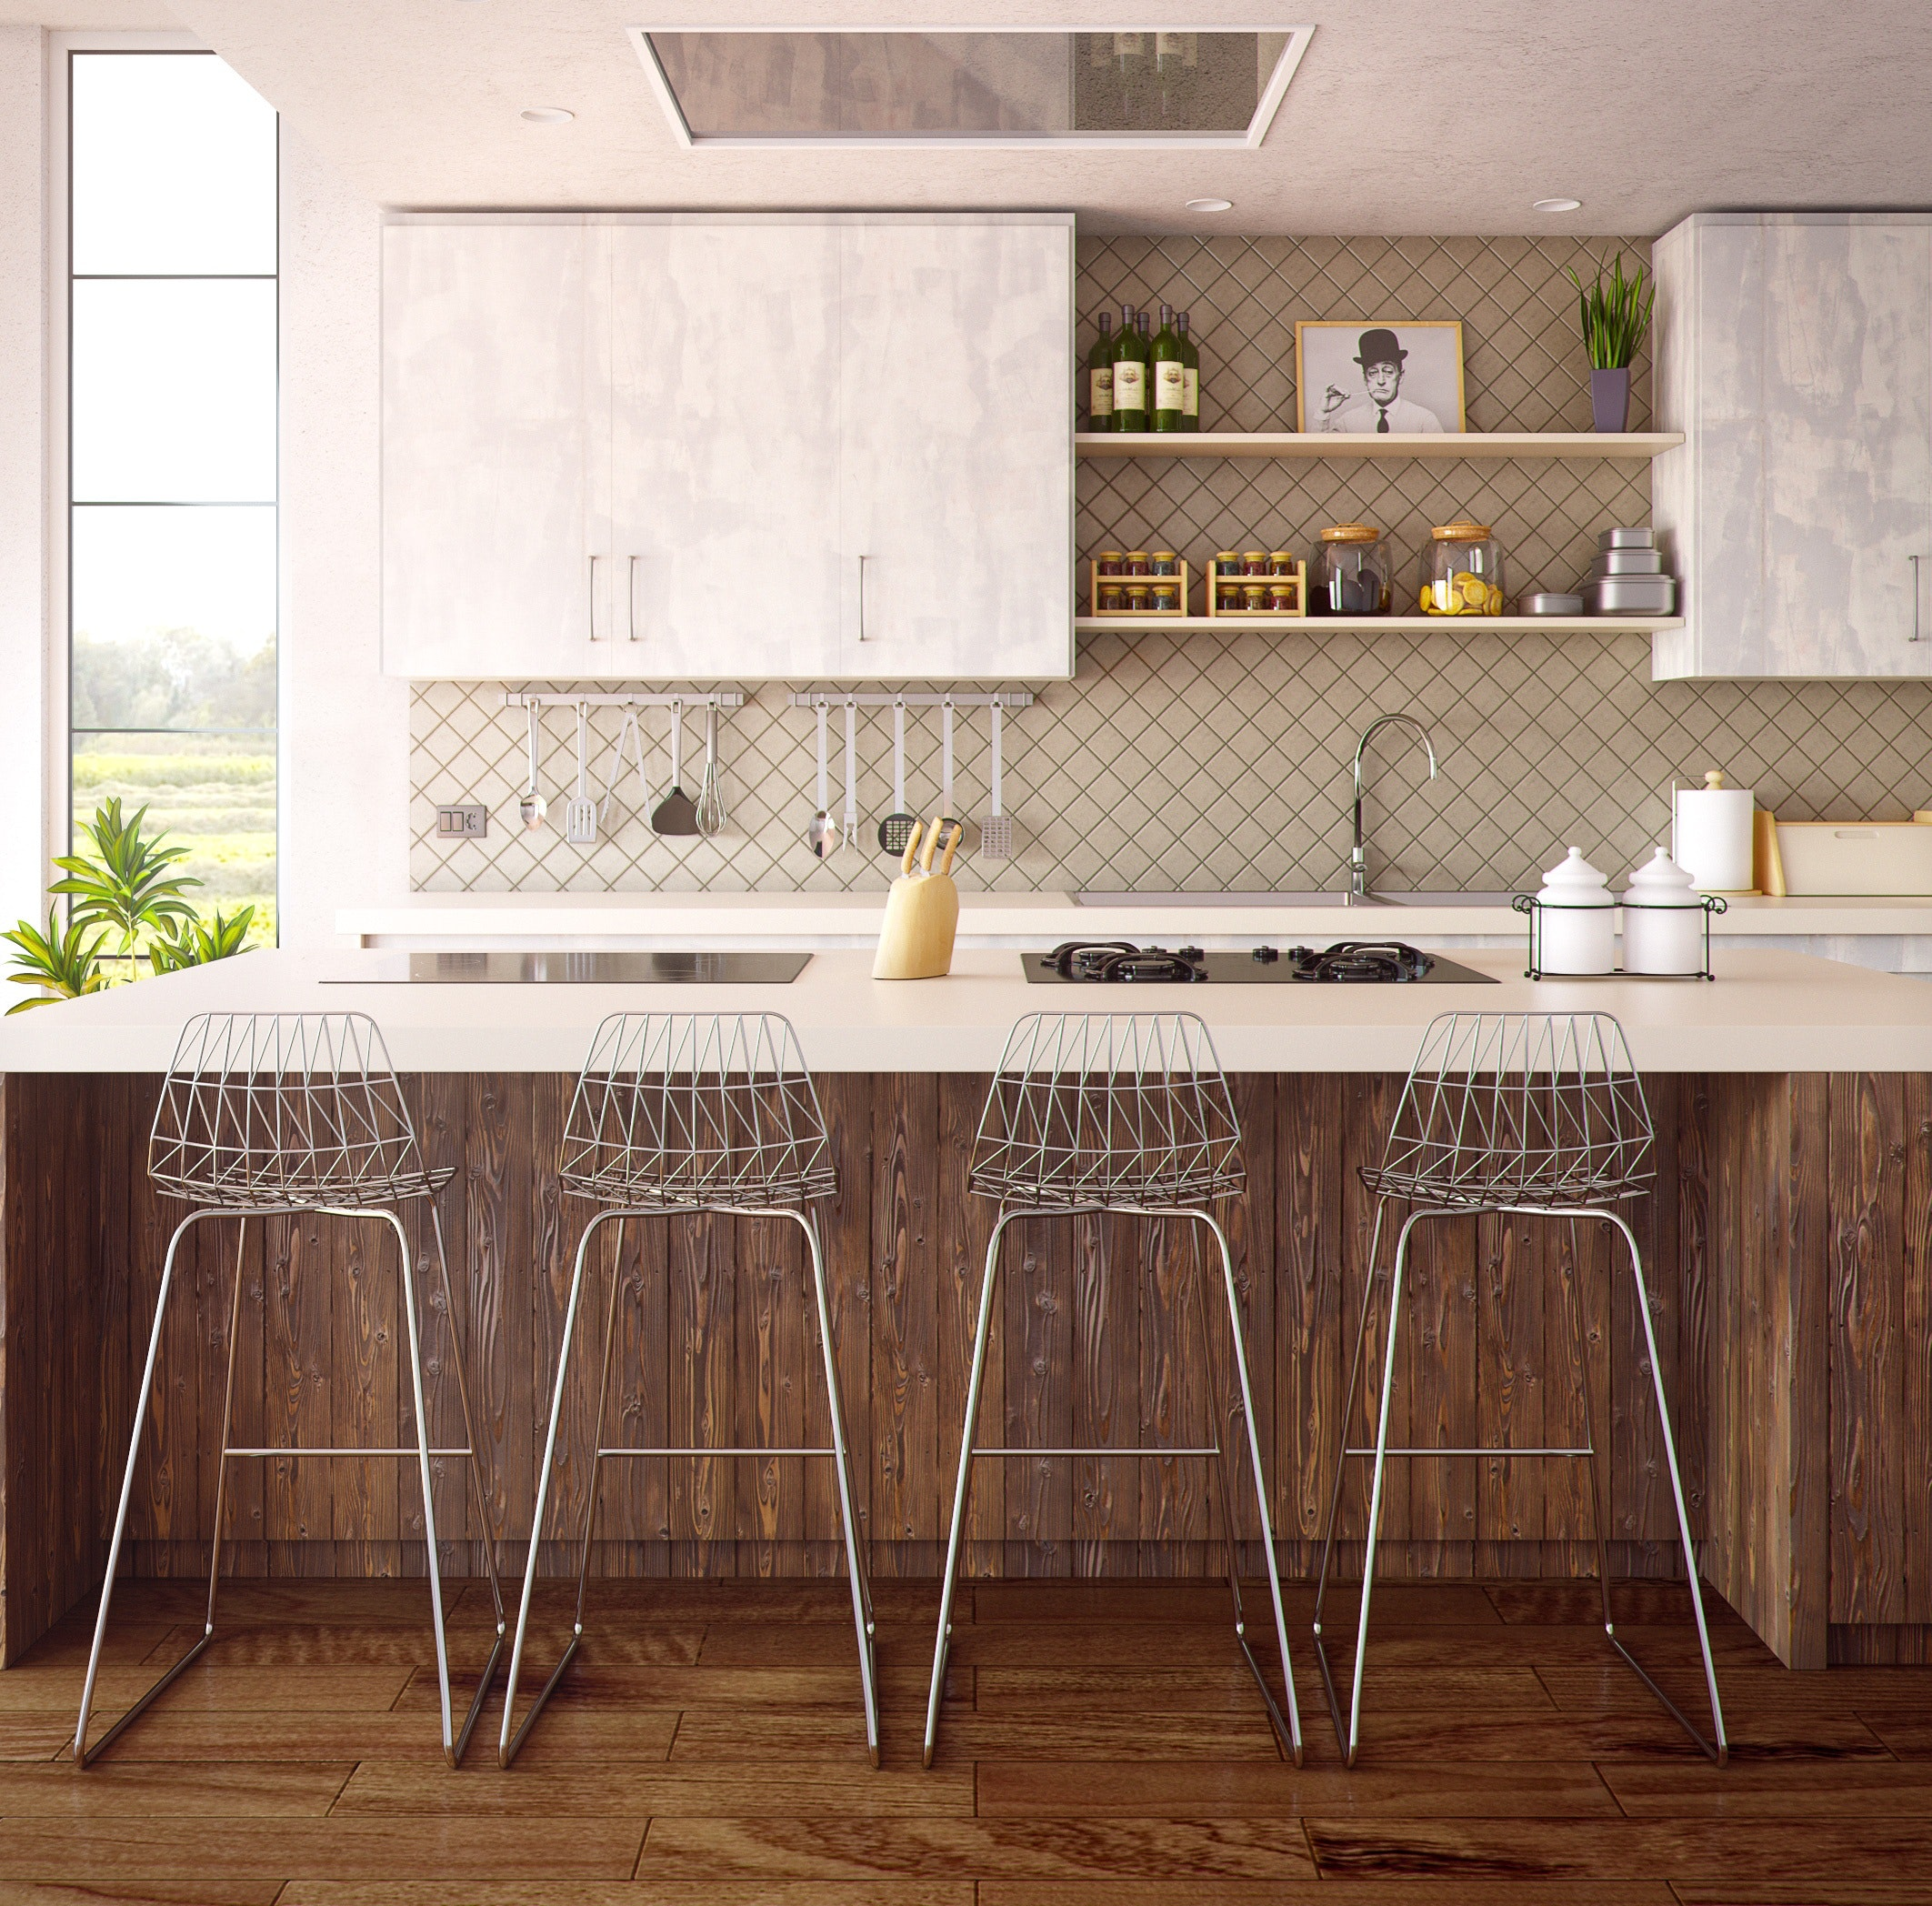 cabinets chairs